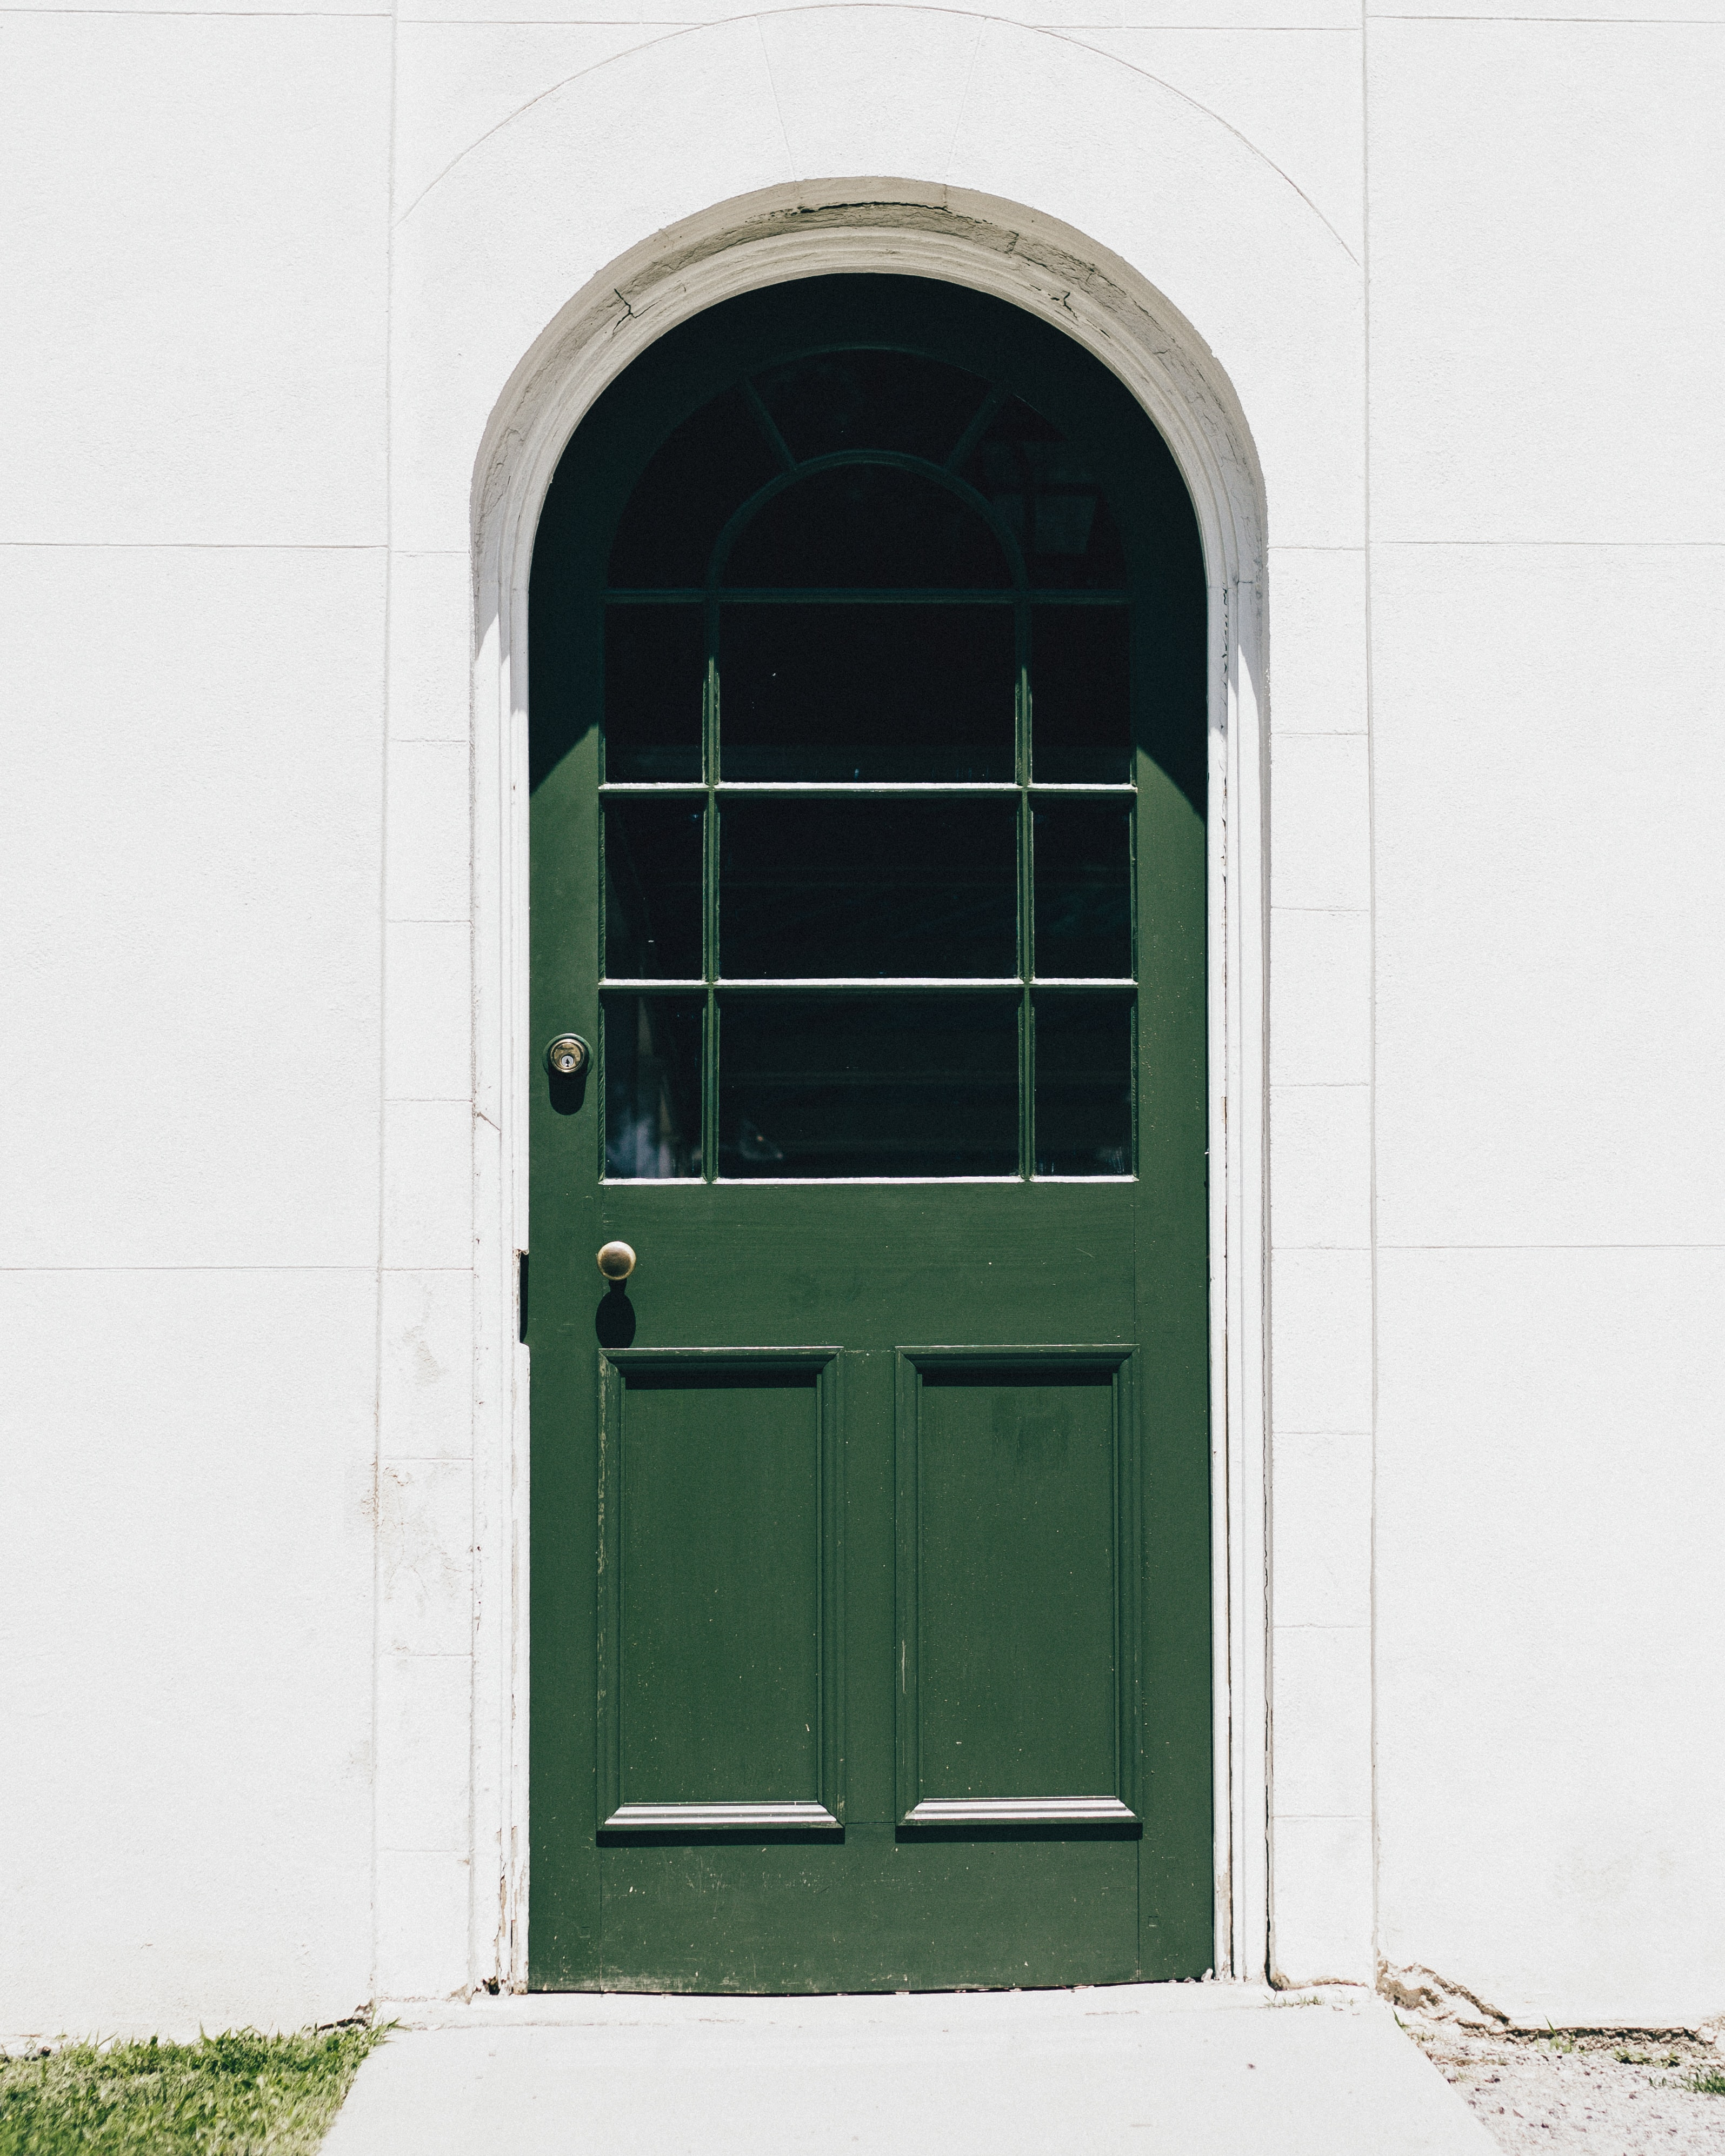 White arched doorway with a green door and windows on the top half and grass next & Door window doorway and white HD photo by Daniel von Appen ...